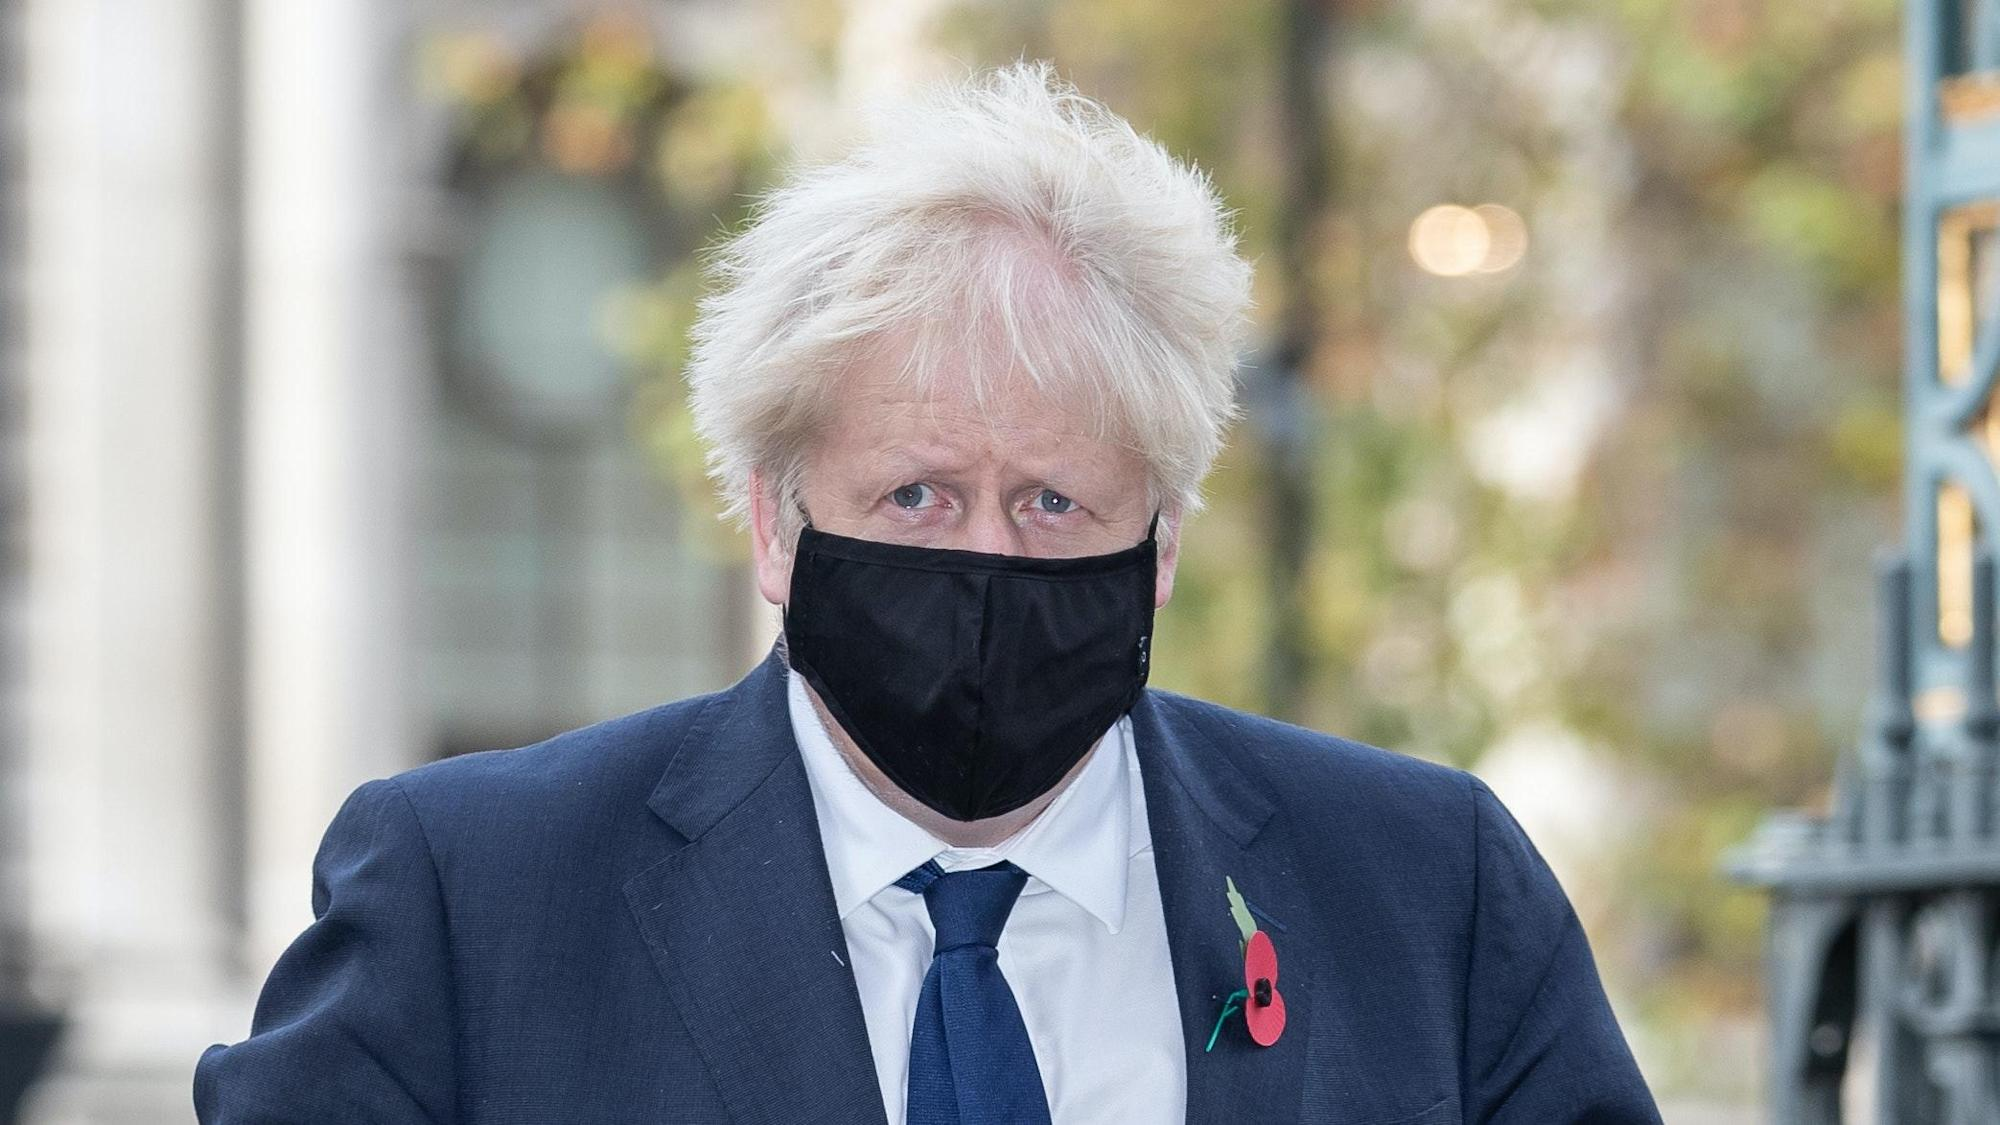 No 10 insists rules were followed at meeting as PM and MPs self-isolate